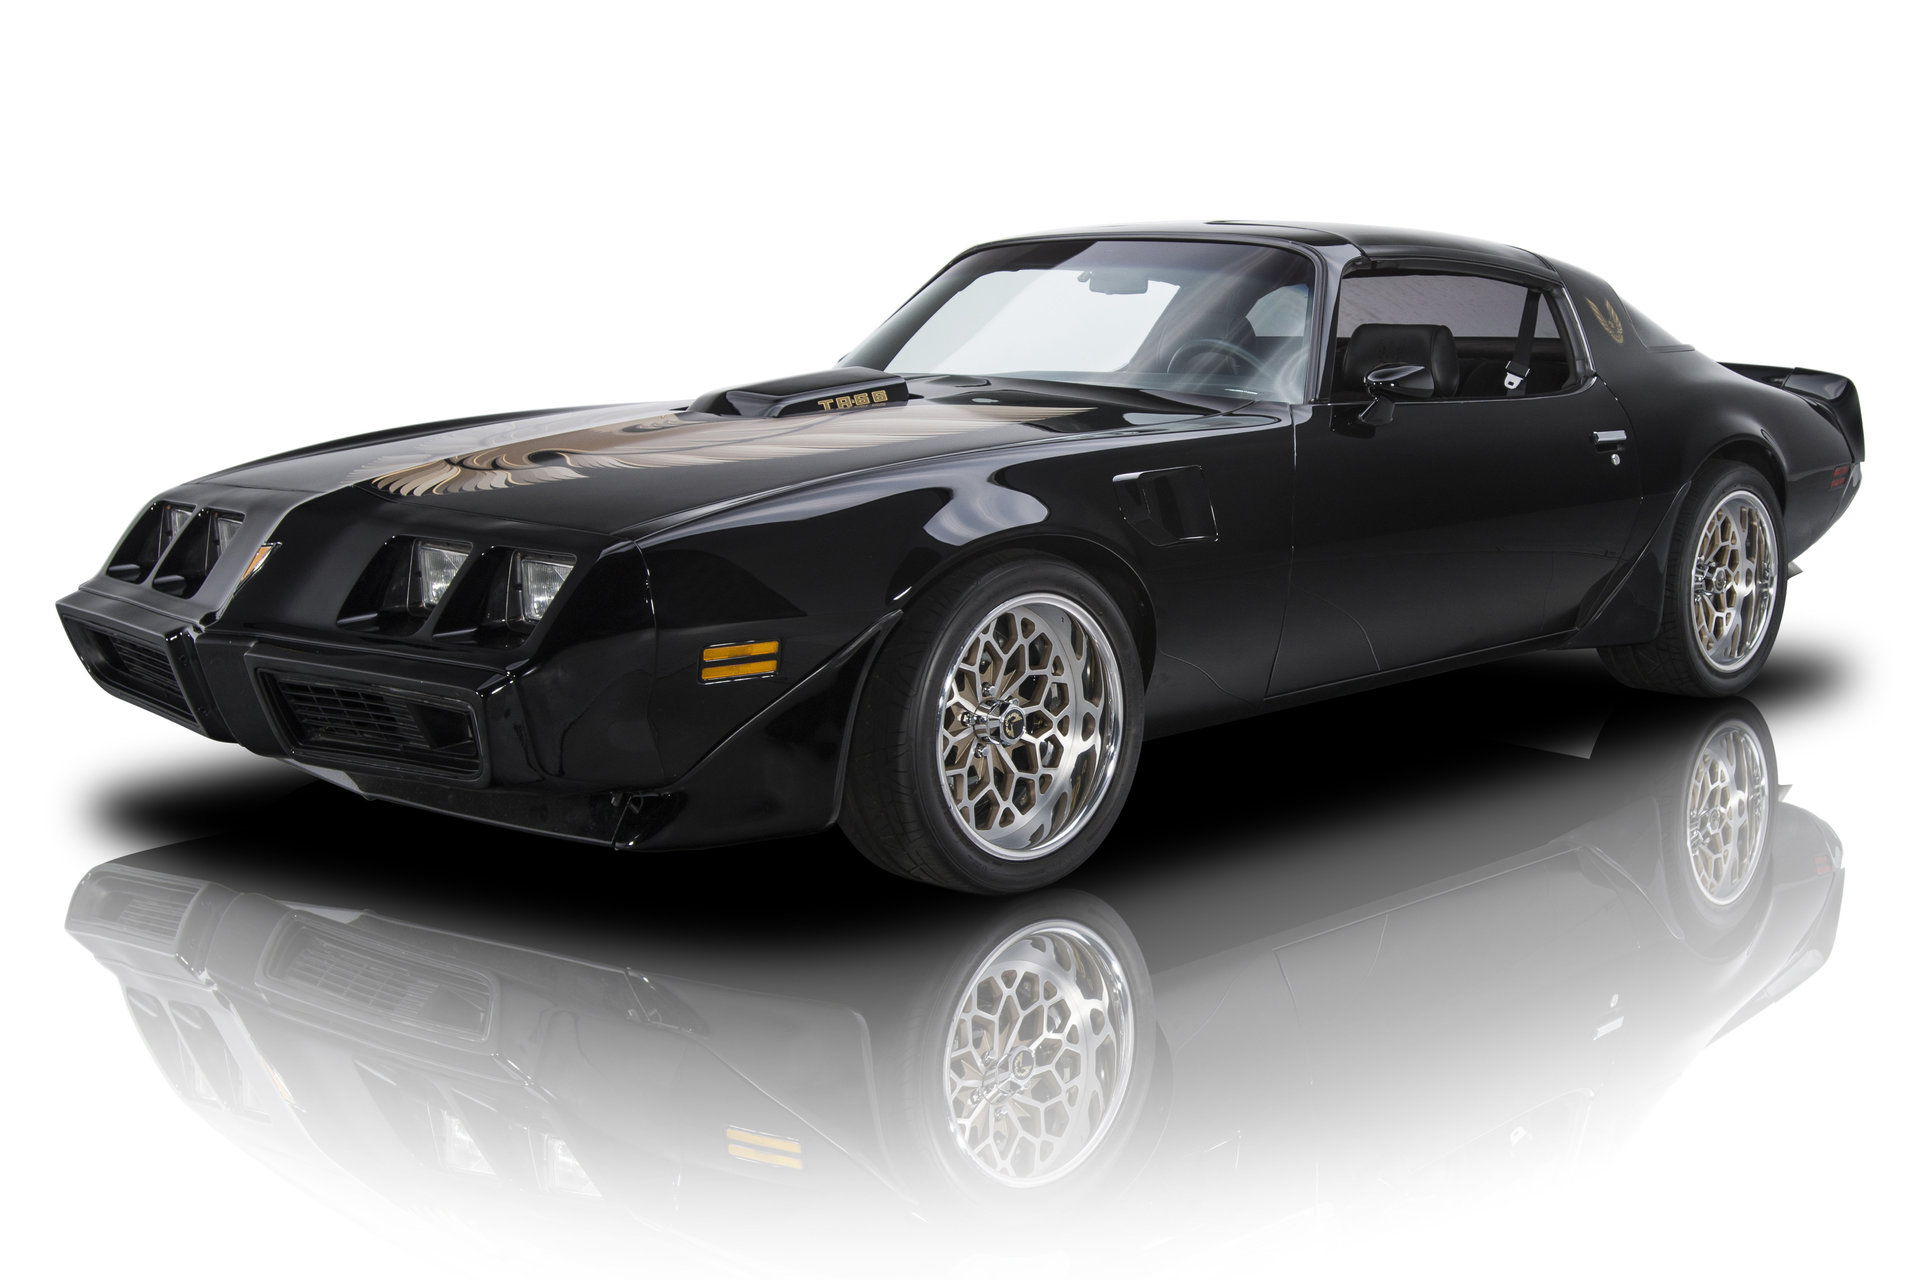 Ground Up Built Trans Am Pro-Touring Resto-mod LS3 V8 4spd Auto AC Leather  DSE